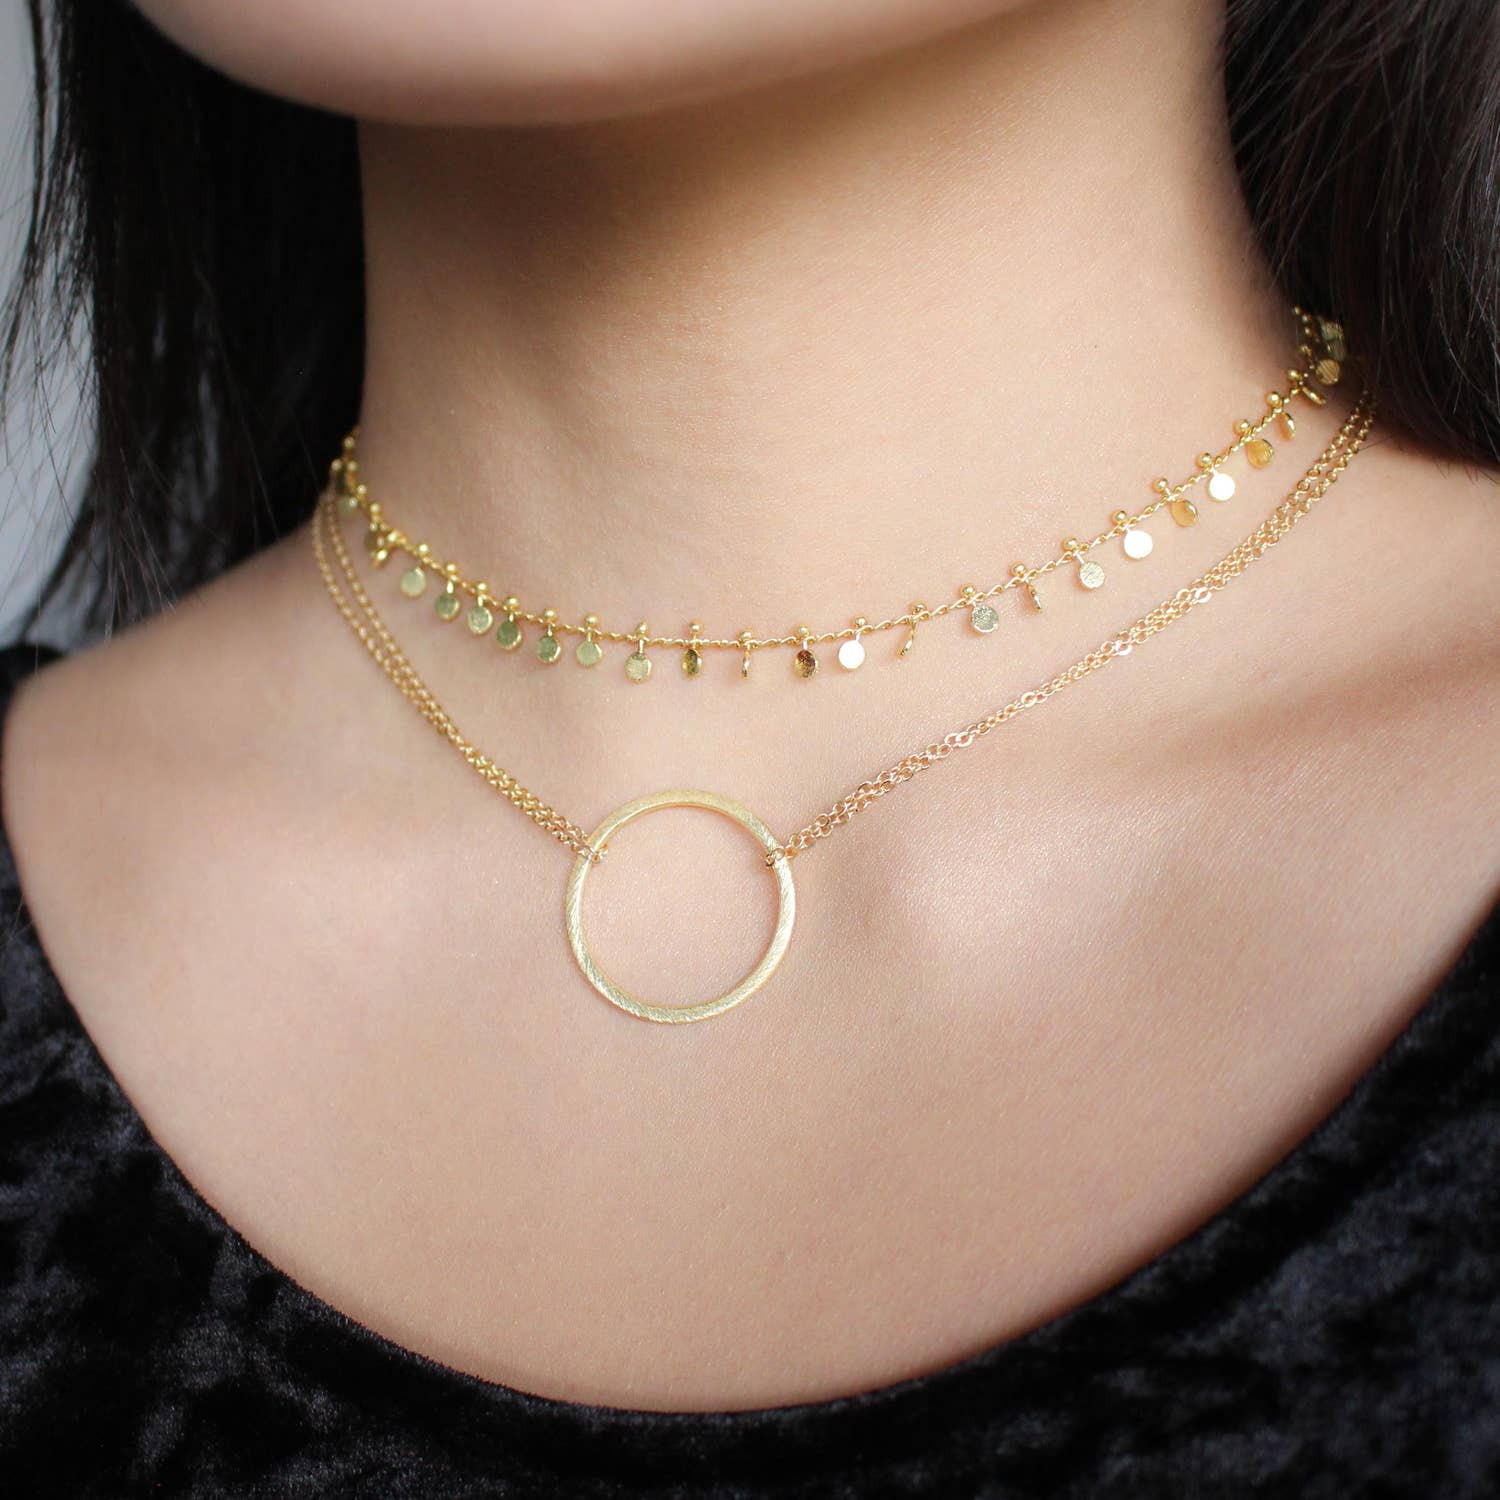 Nikki Smith Designs 14K Double Chain Circle Choker Accessories - Jewelry - Necklaces - Sophie